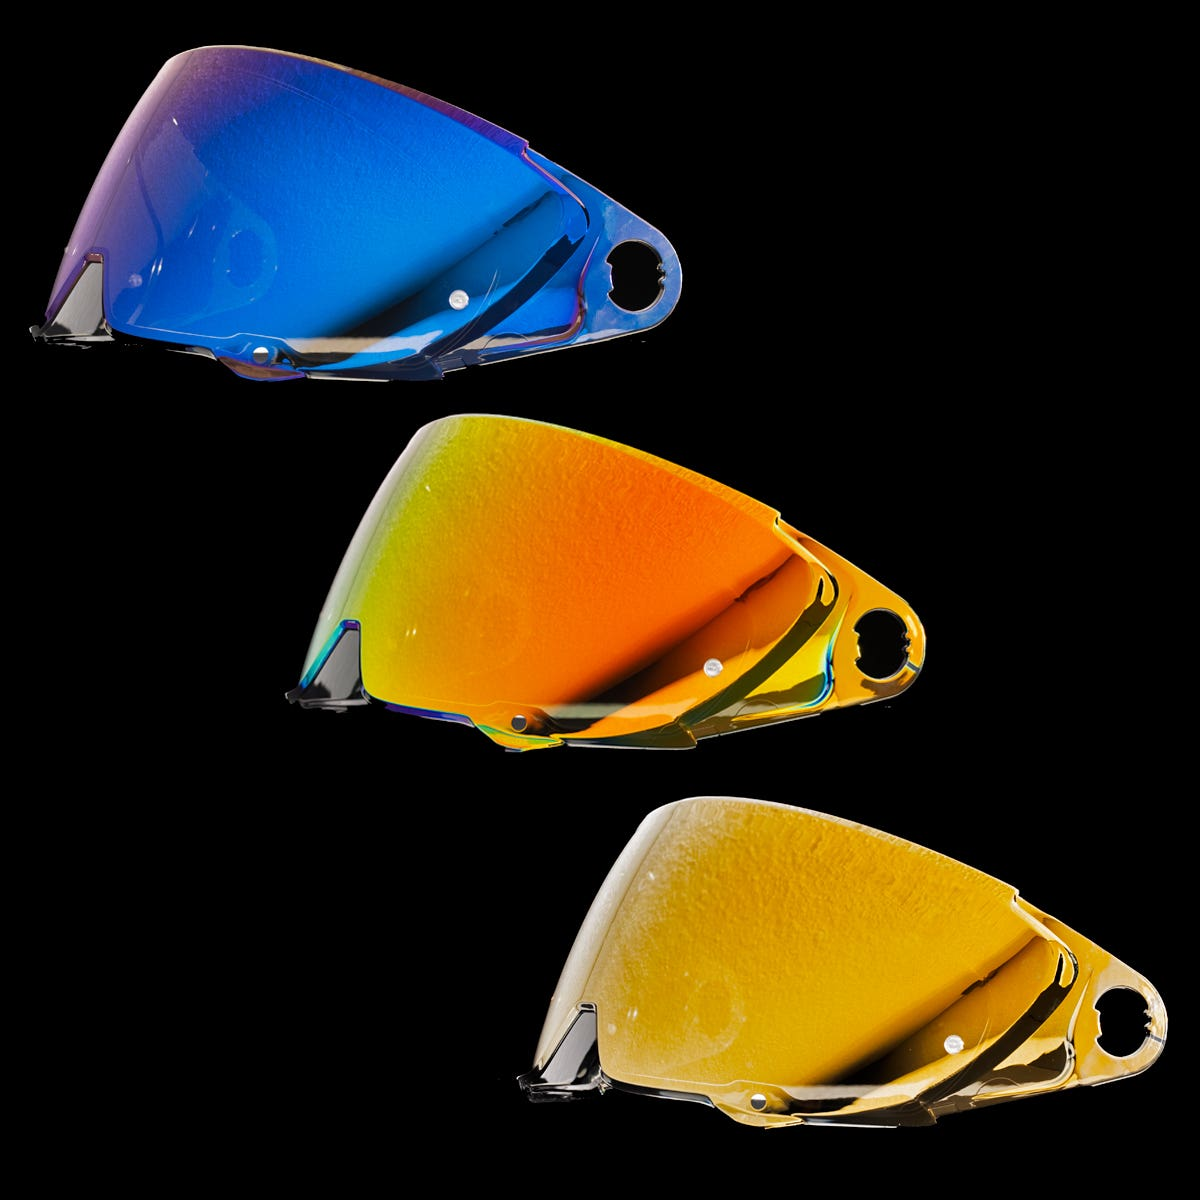 Atlas 2.0 Fully Loaded Visor Pack - Gold, Red & Blue Visors